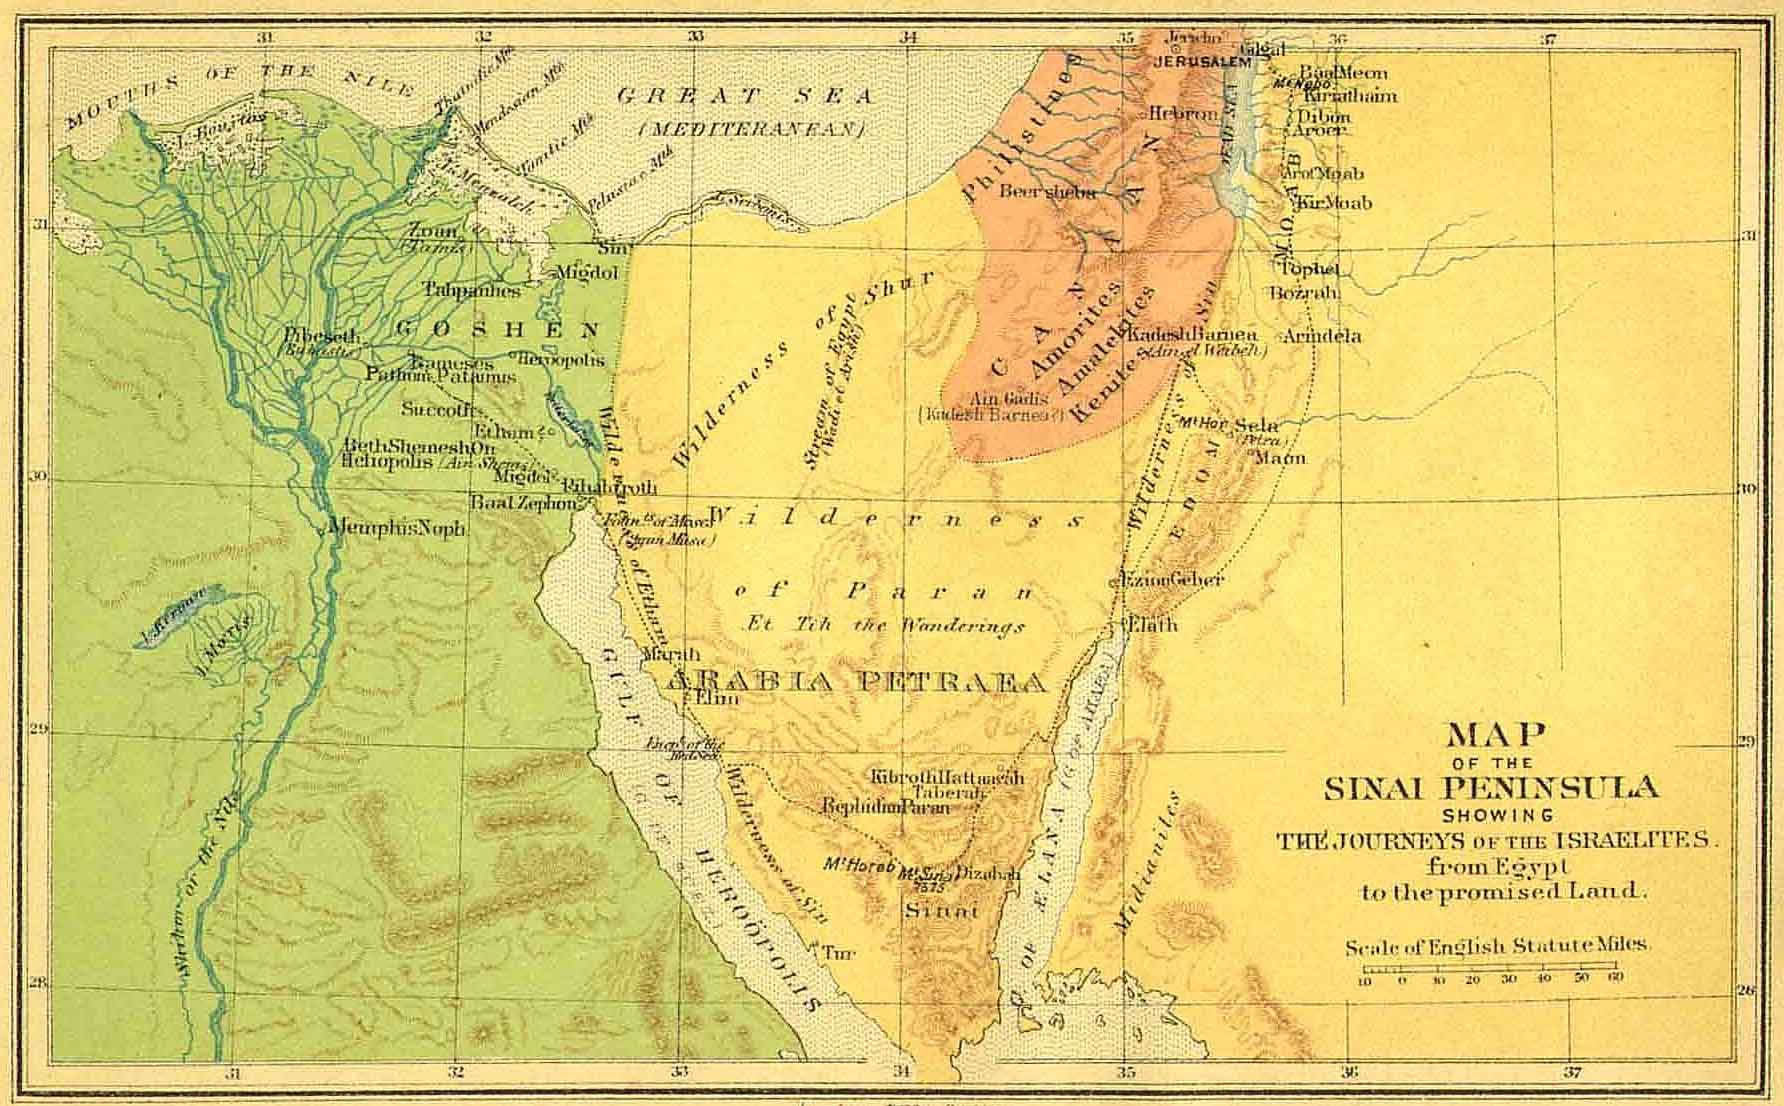 Sinai Peninsula Map - Journey of Israelites from Egypt to Promised ...